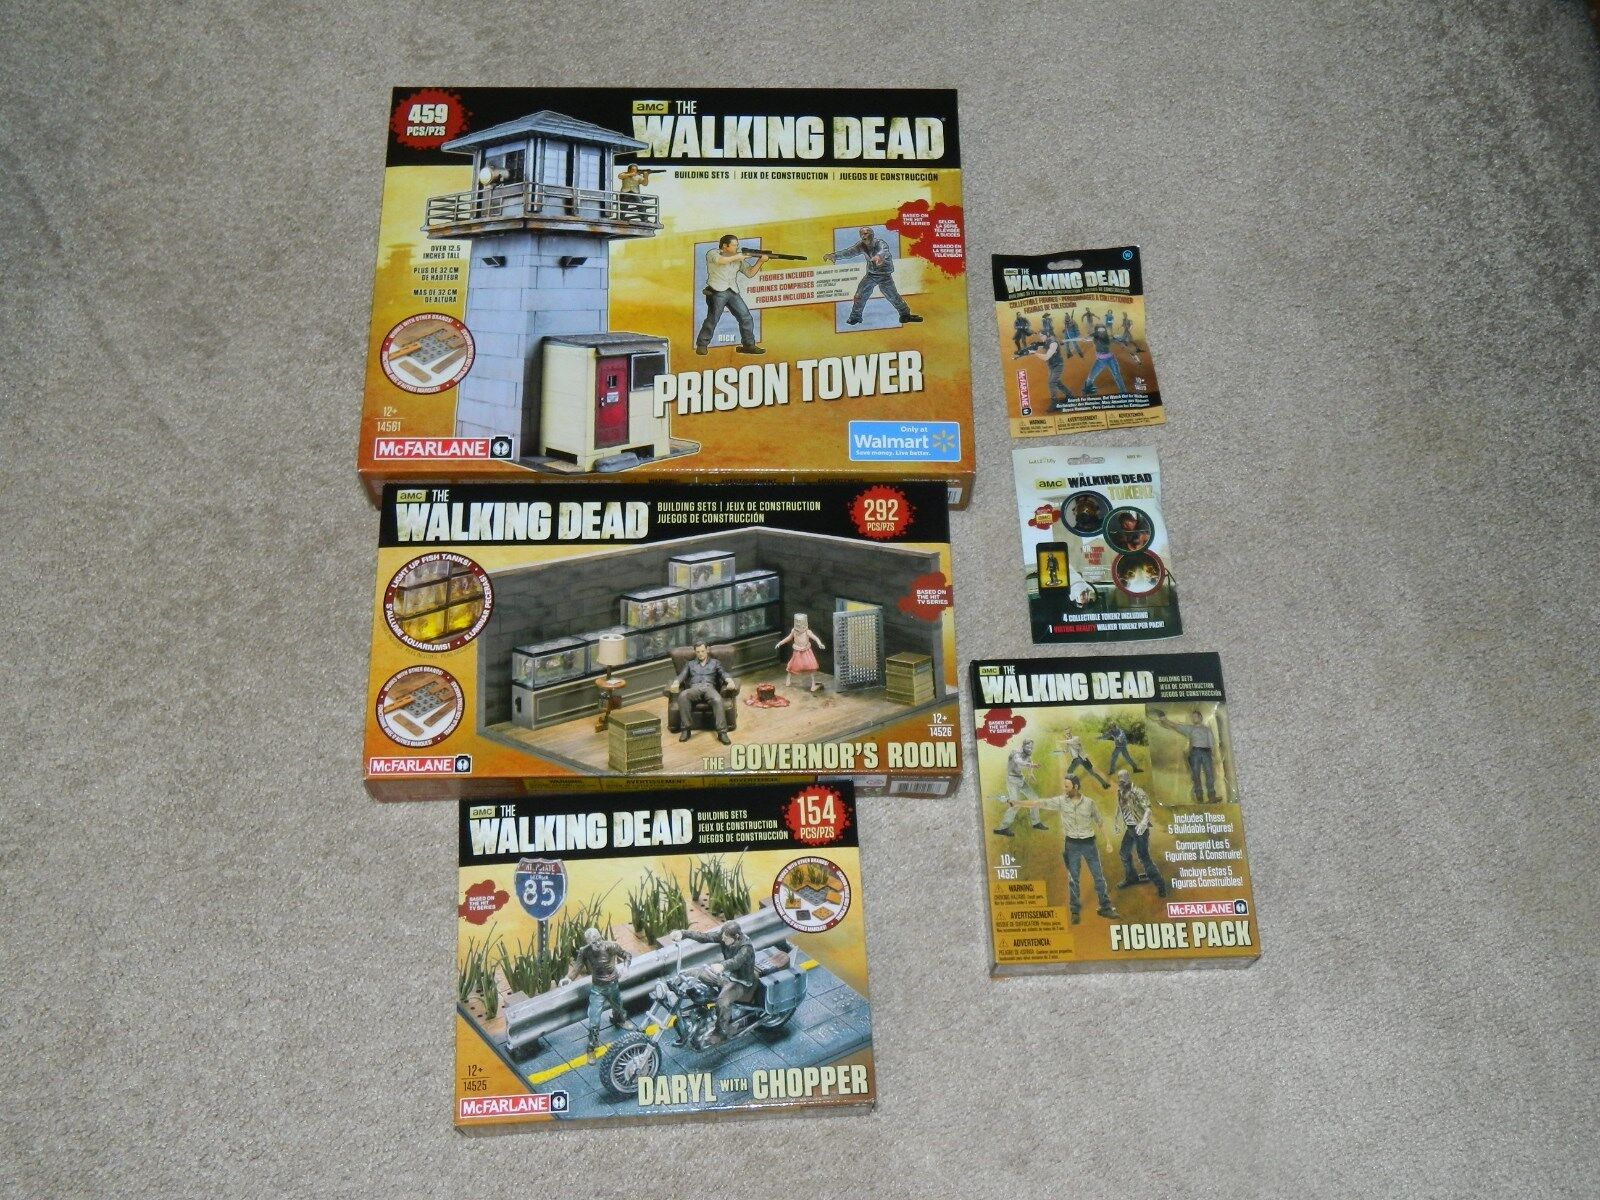 McFarlane AMC Lot of 6 Walking Dead Building Sets Prison Tower / Governors Room